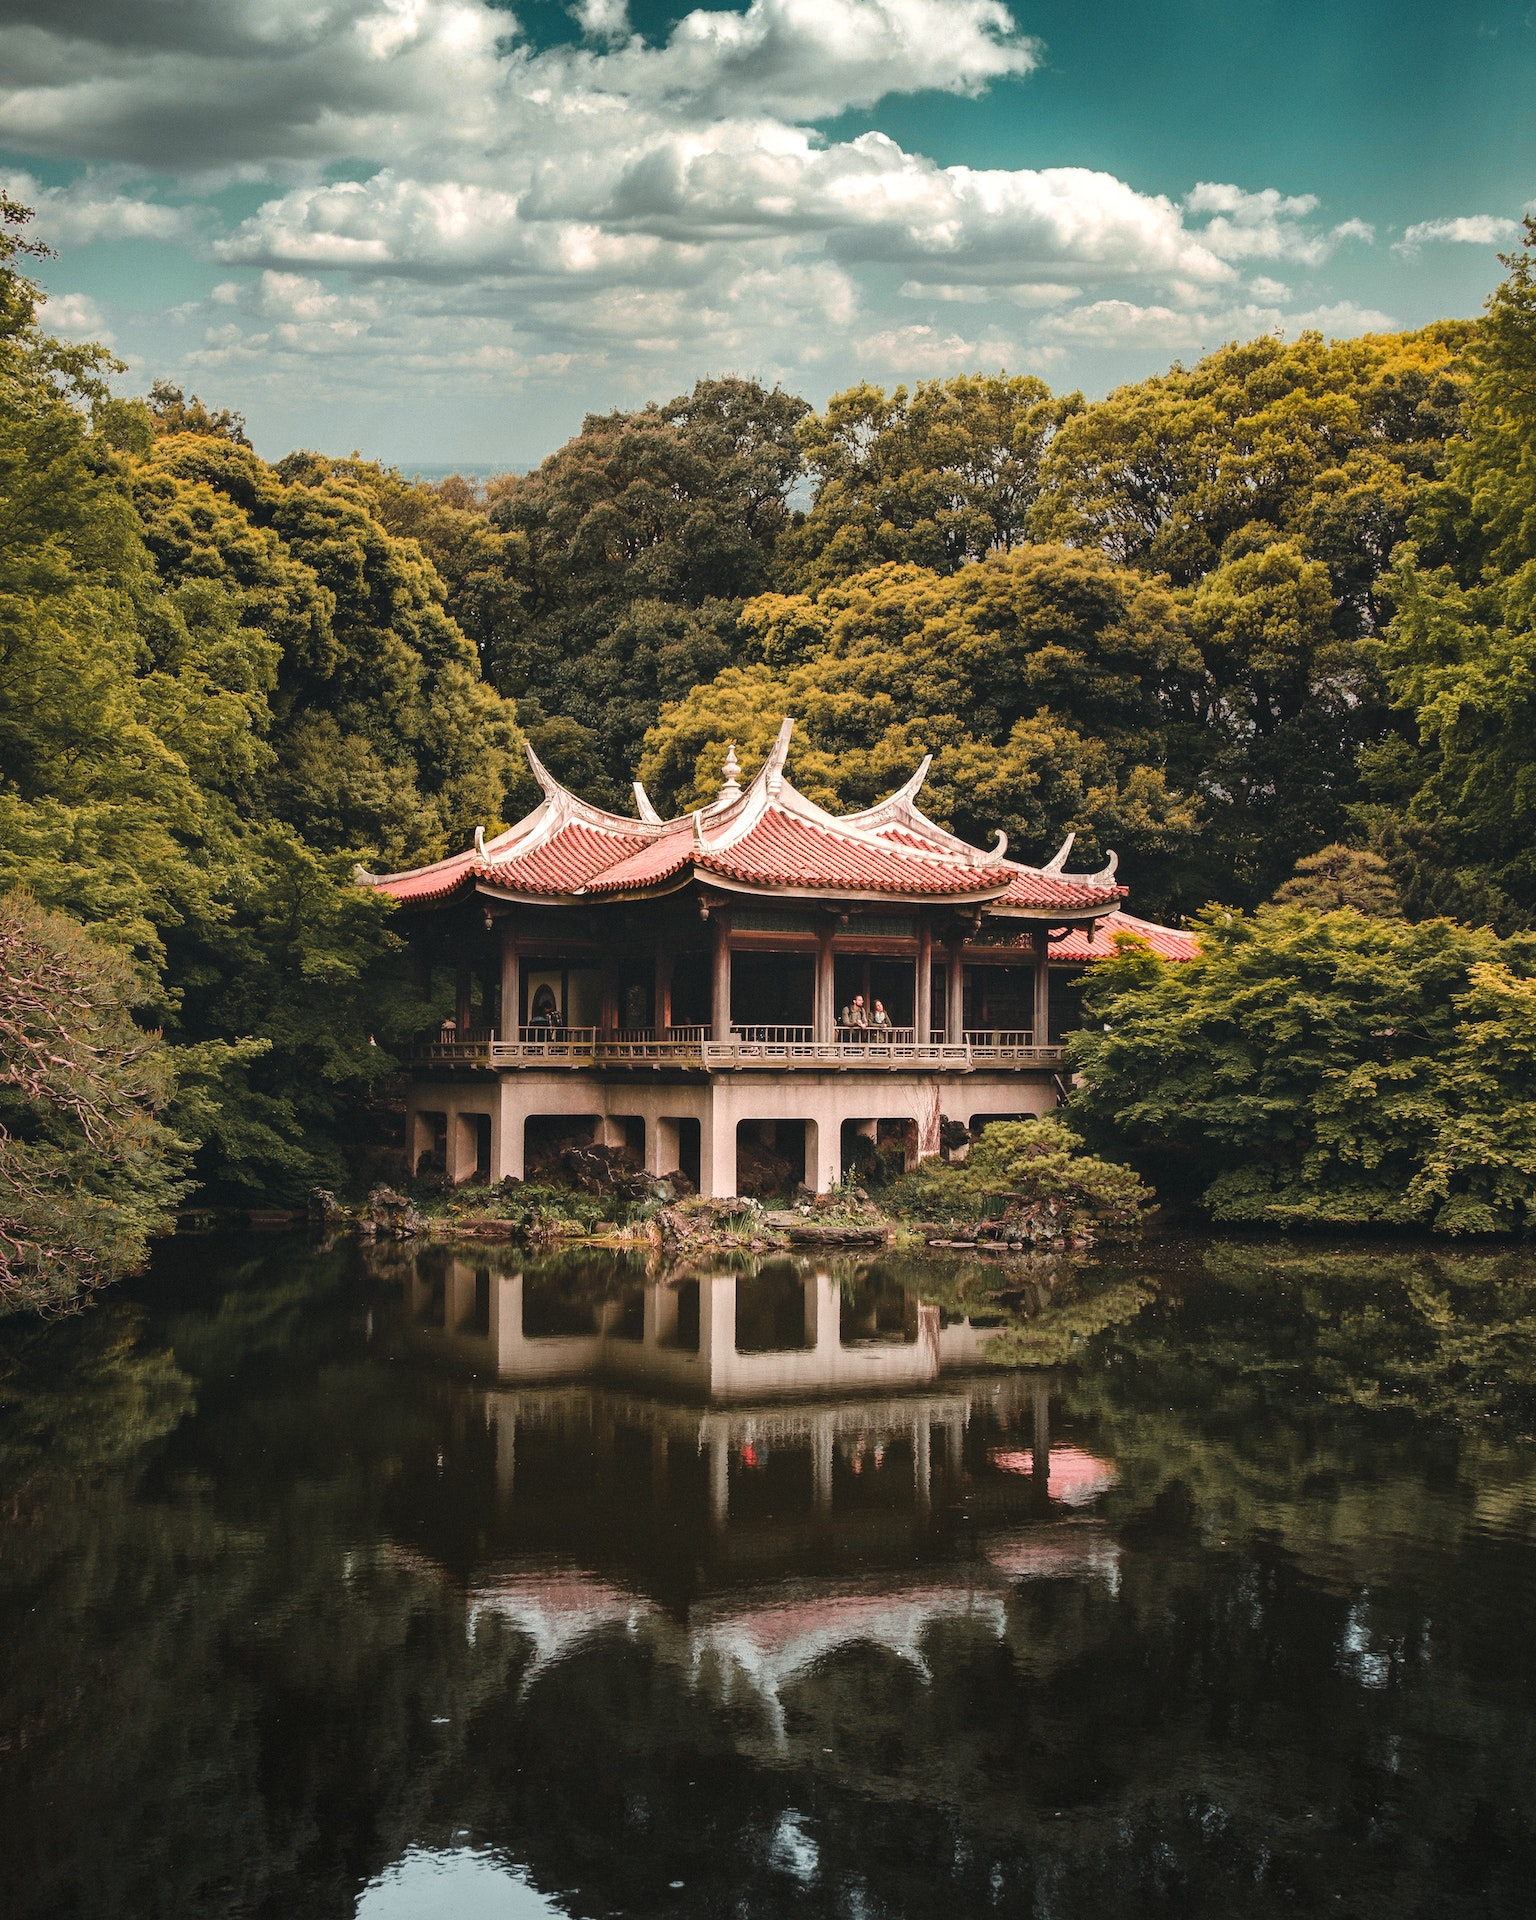 Visit Japan as one of the best places to travel solo